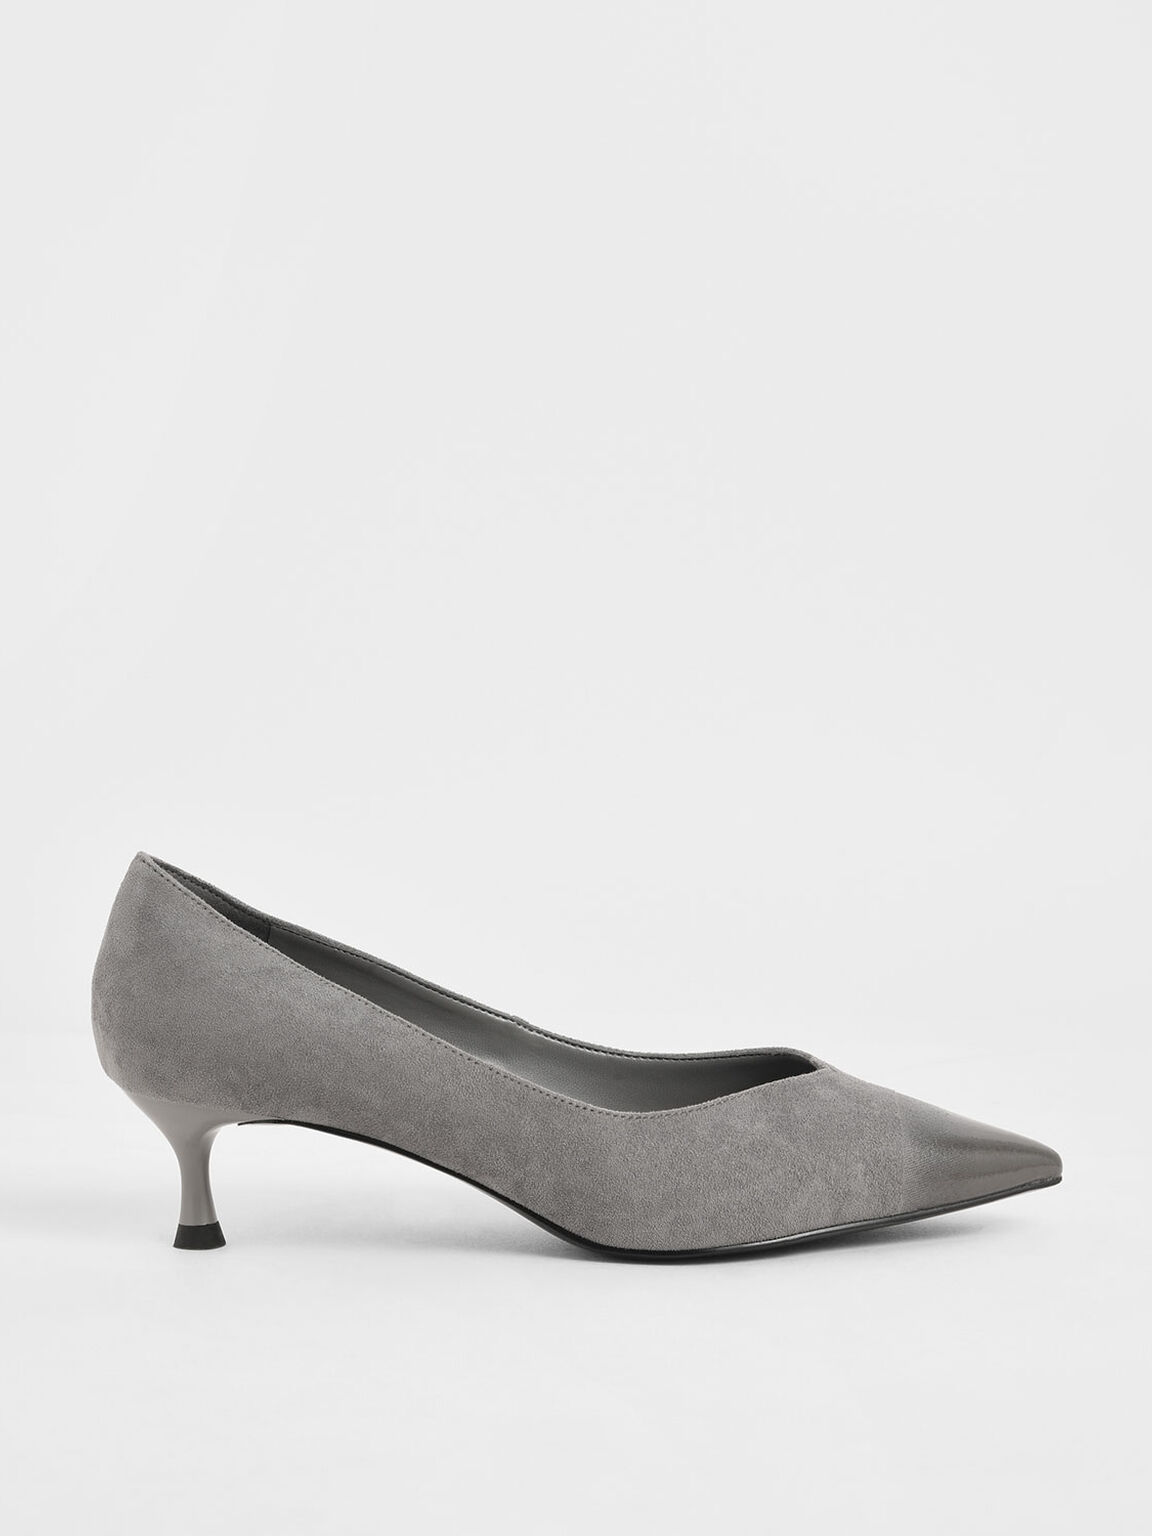 Brushed Effect Textured Sculptural Heel Pumps, Grey, hi-res